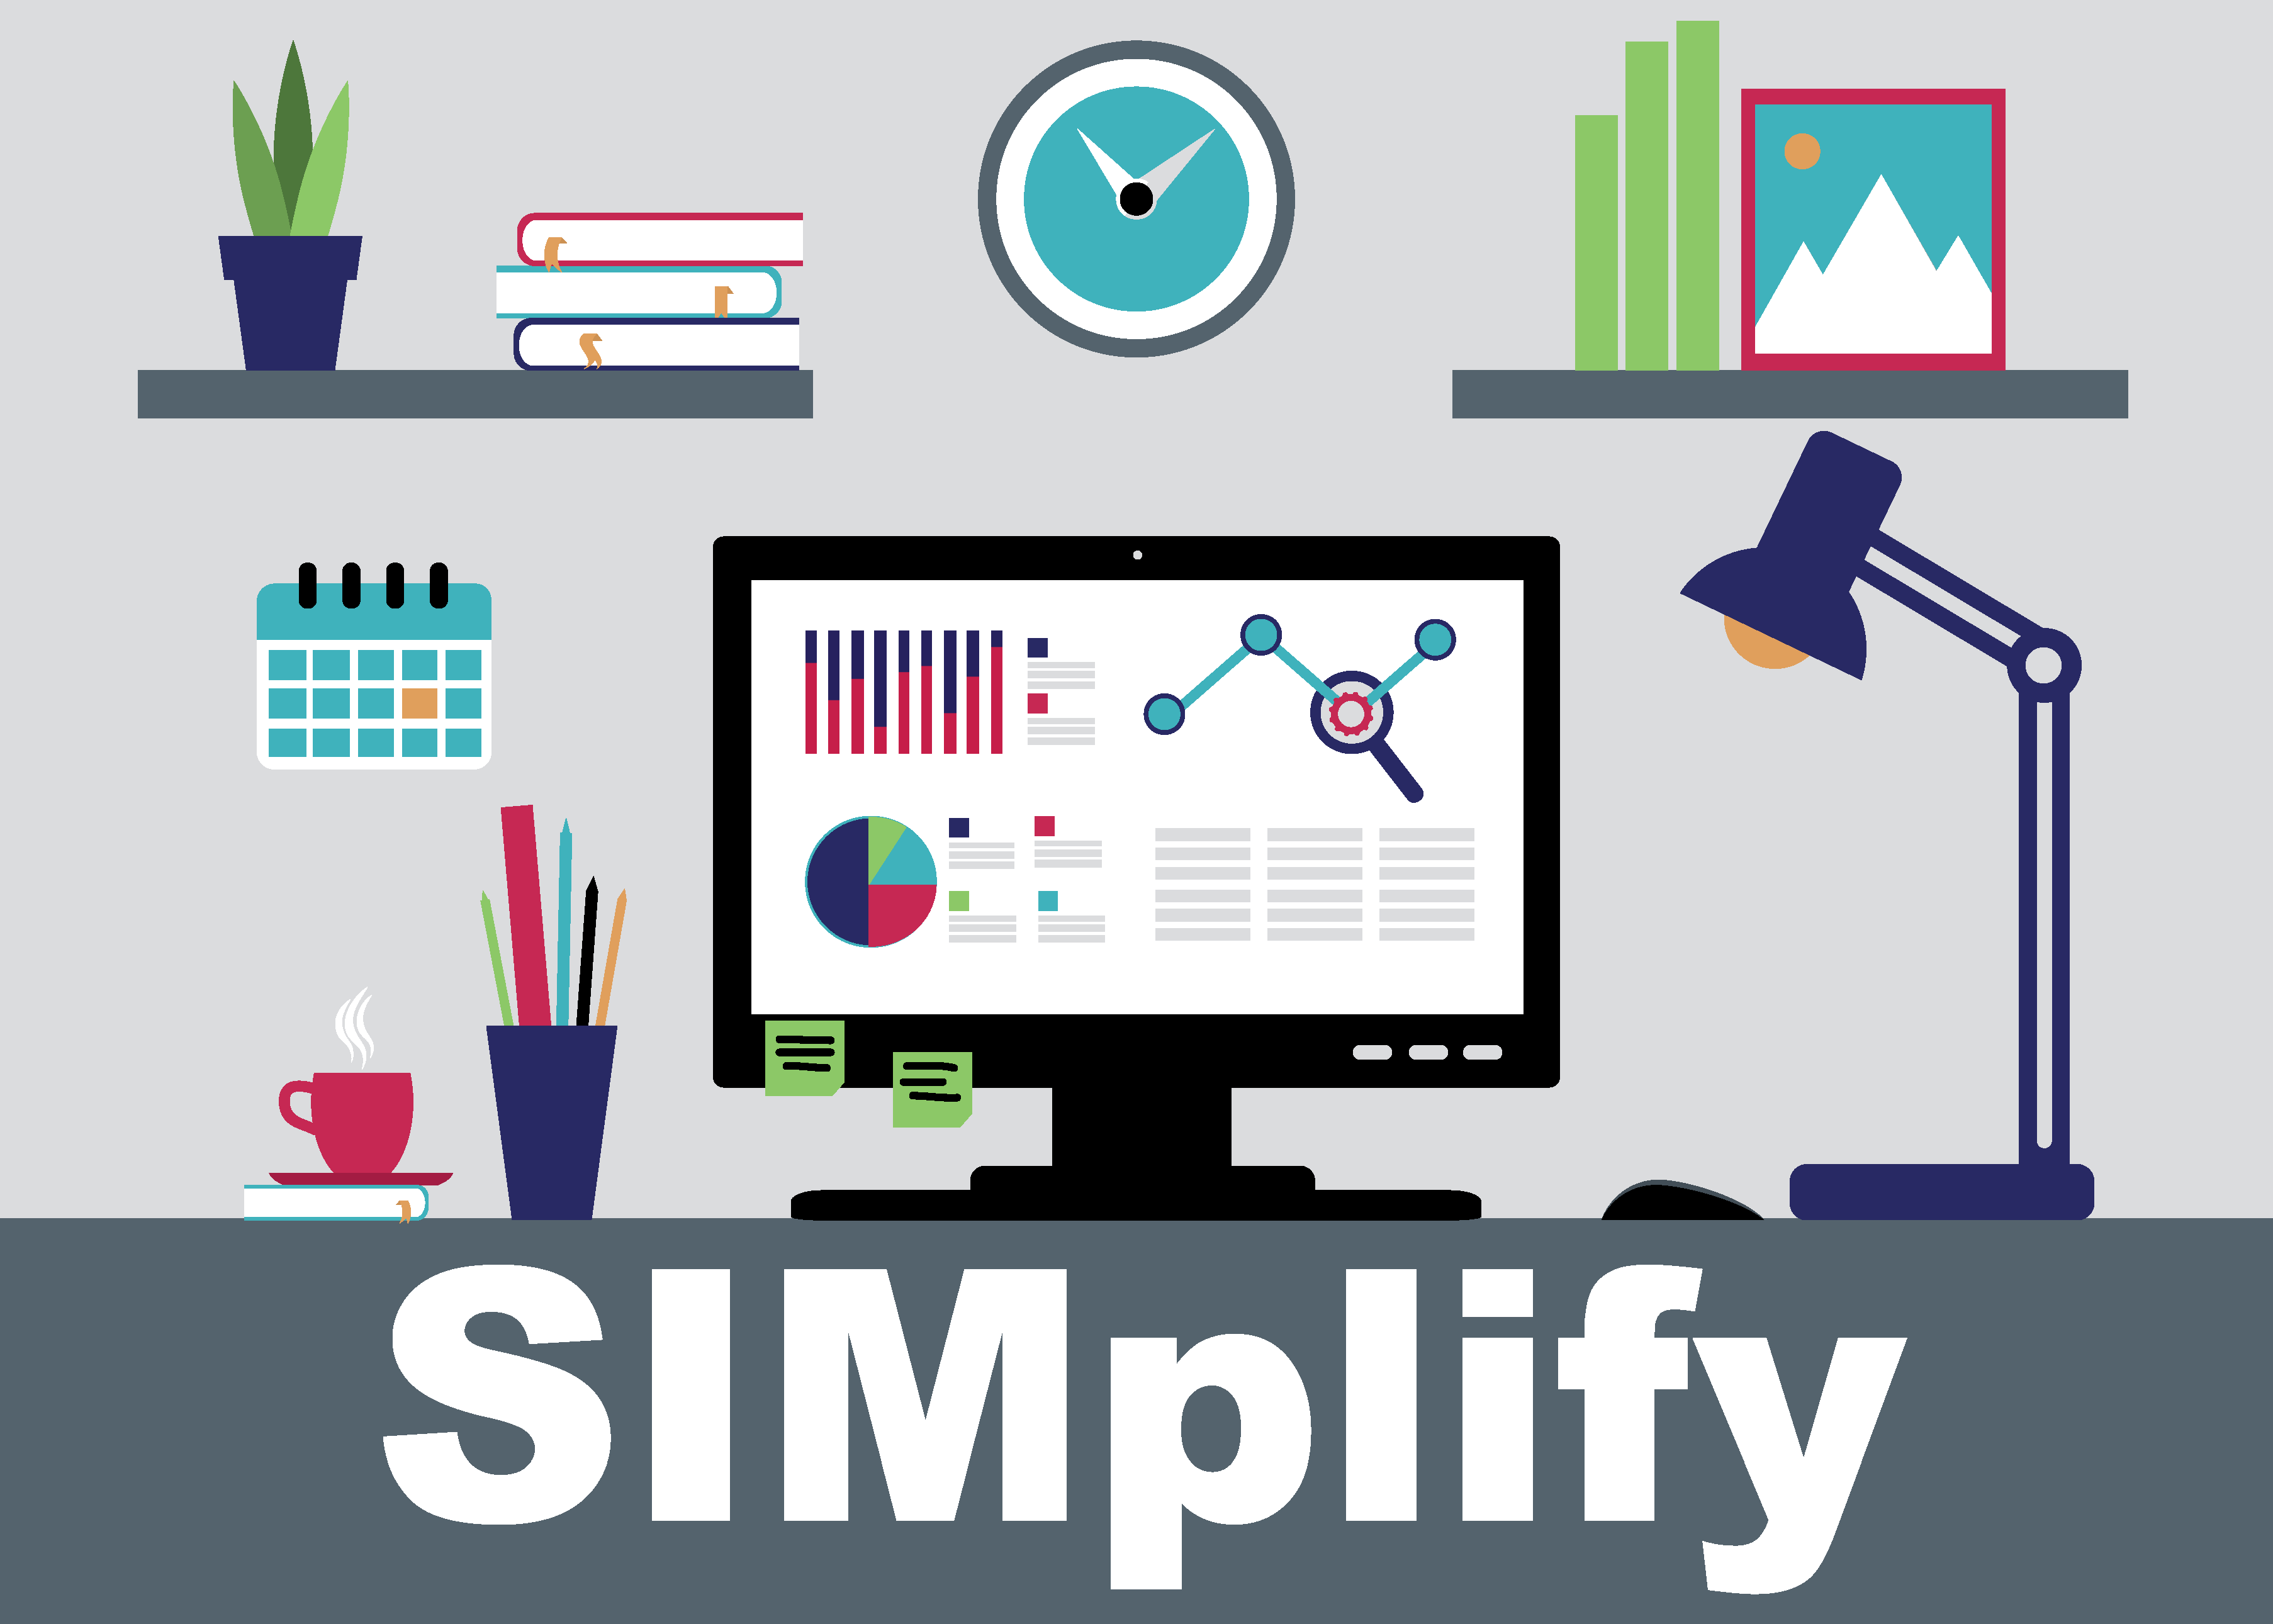 State Innovation Model of Iowa's (SIM) monthly SIMplify newsletter header image including a desktop computer.